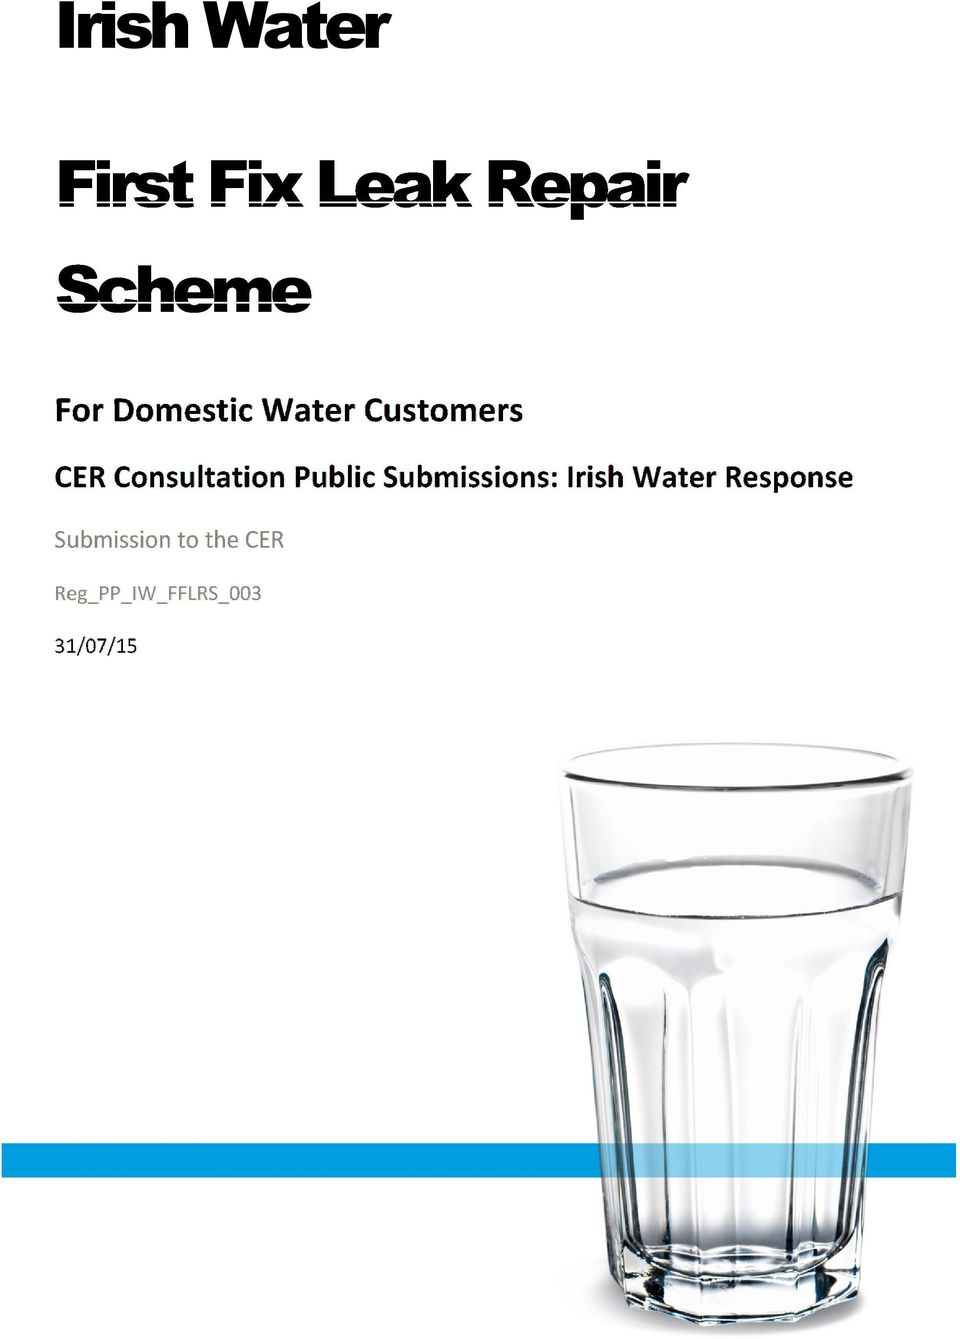 Public Submissions: Irish Water Response